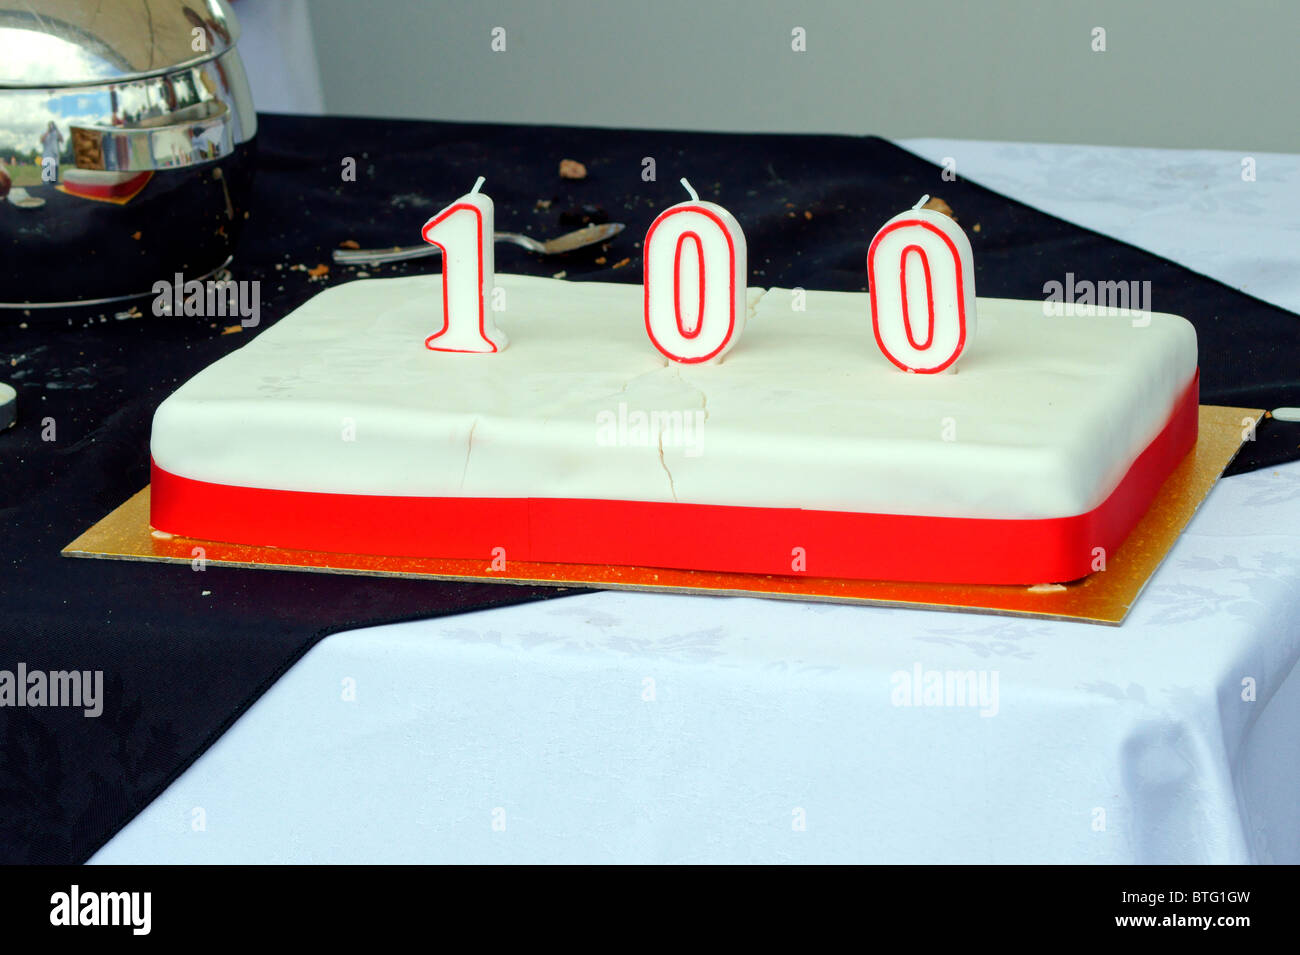 THE CELEBRATION CAKE 100 YEARS OF FLYING SOUTHAMPTON AIRPORT? - Stock Image